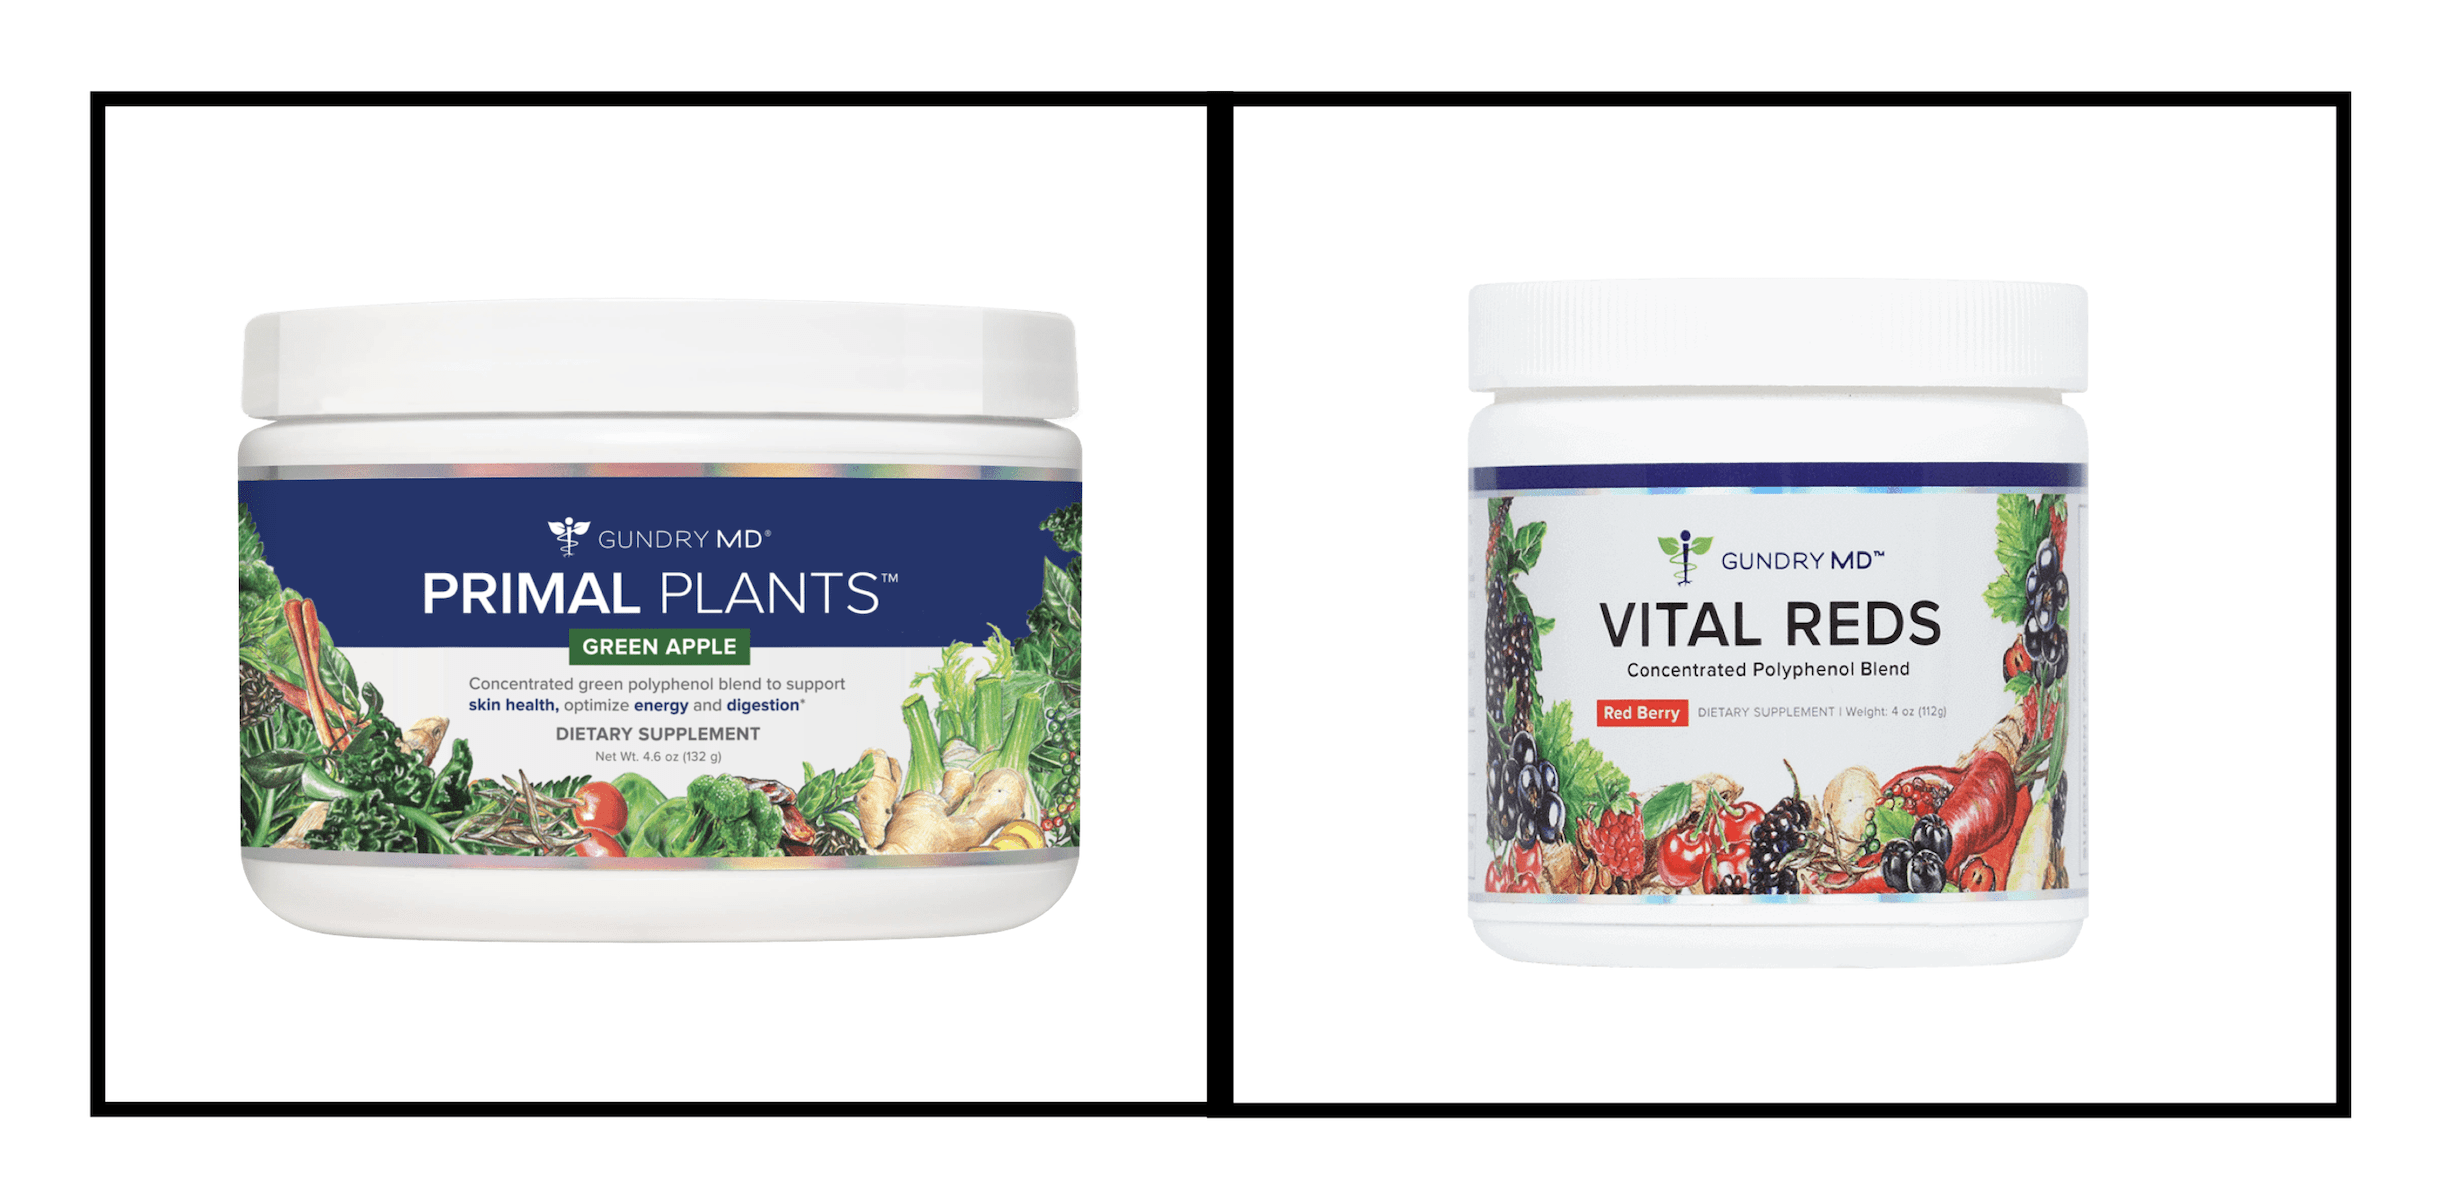 Primal Plants Vs. Vital Reds – Which Gundry MD Superfood Powder Is Better?